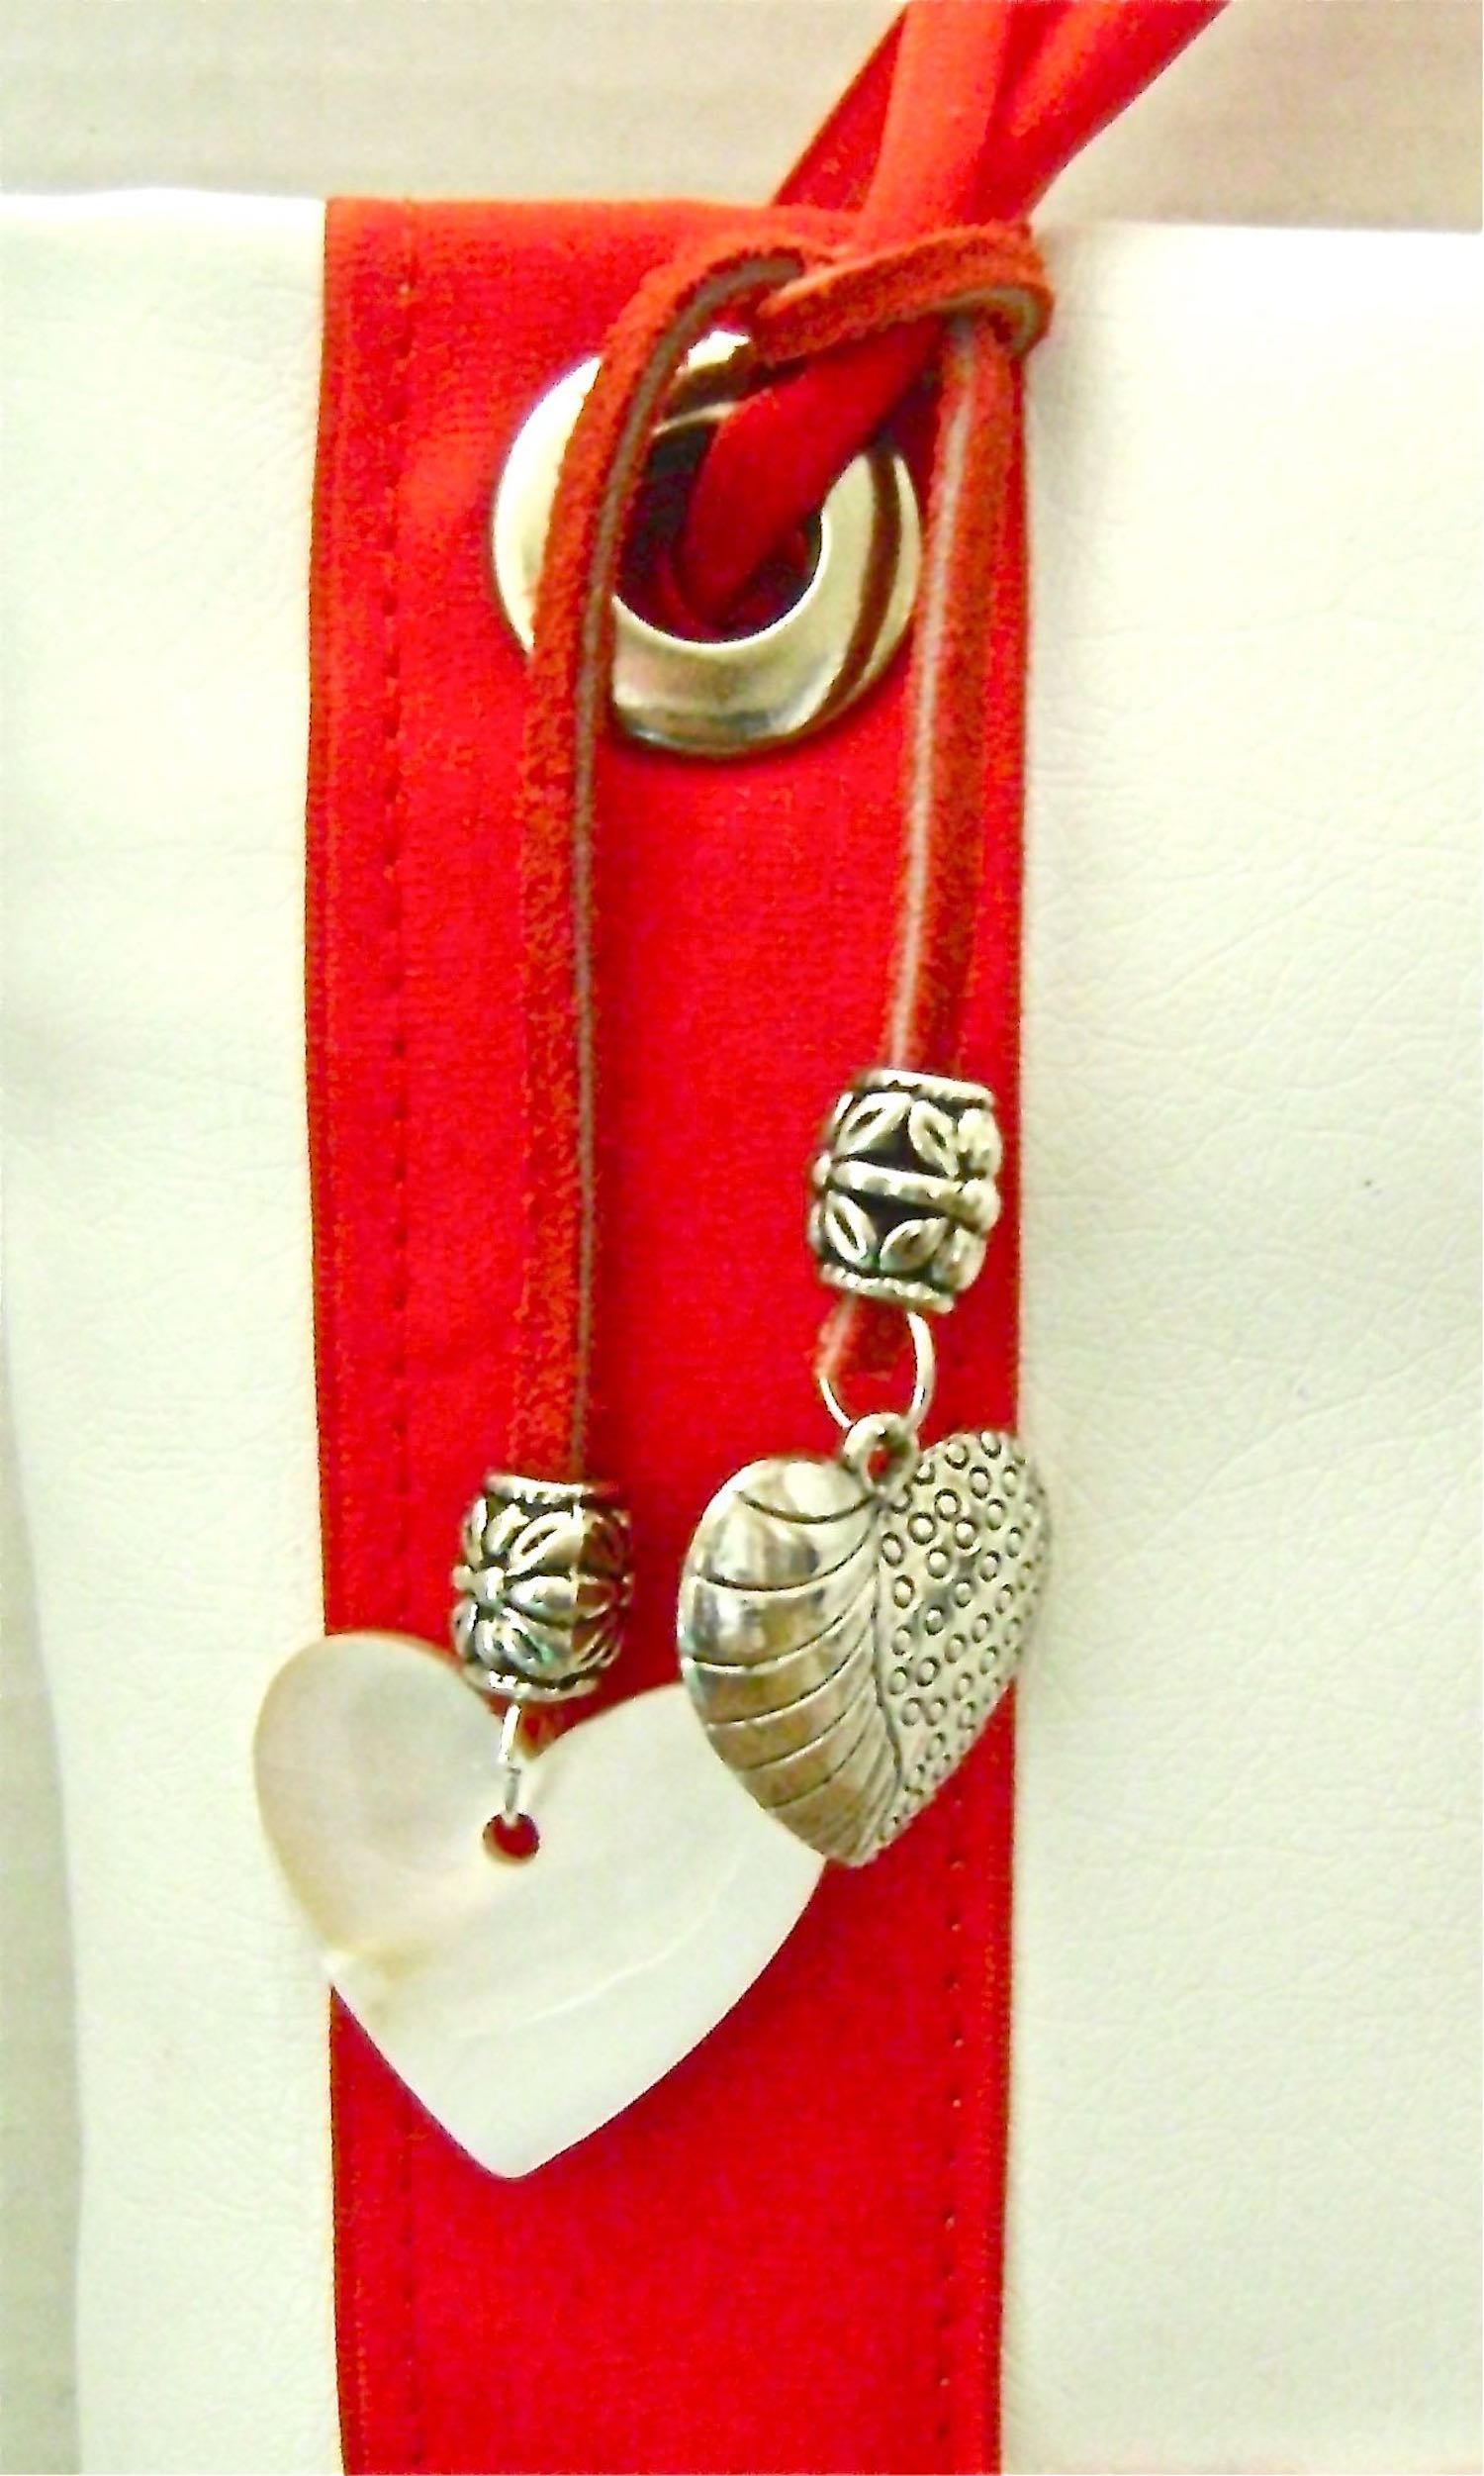 "step 19 - Poke holes in the ends of a 7"" strip of rawhide cord with a sharp needle.  Attach decorative silver beads and attach heart charms with jump rings. Tie the cord around the ribbon."